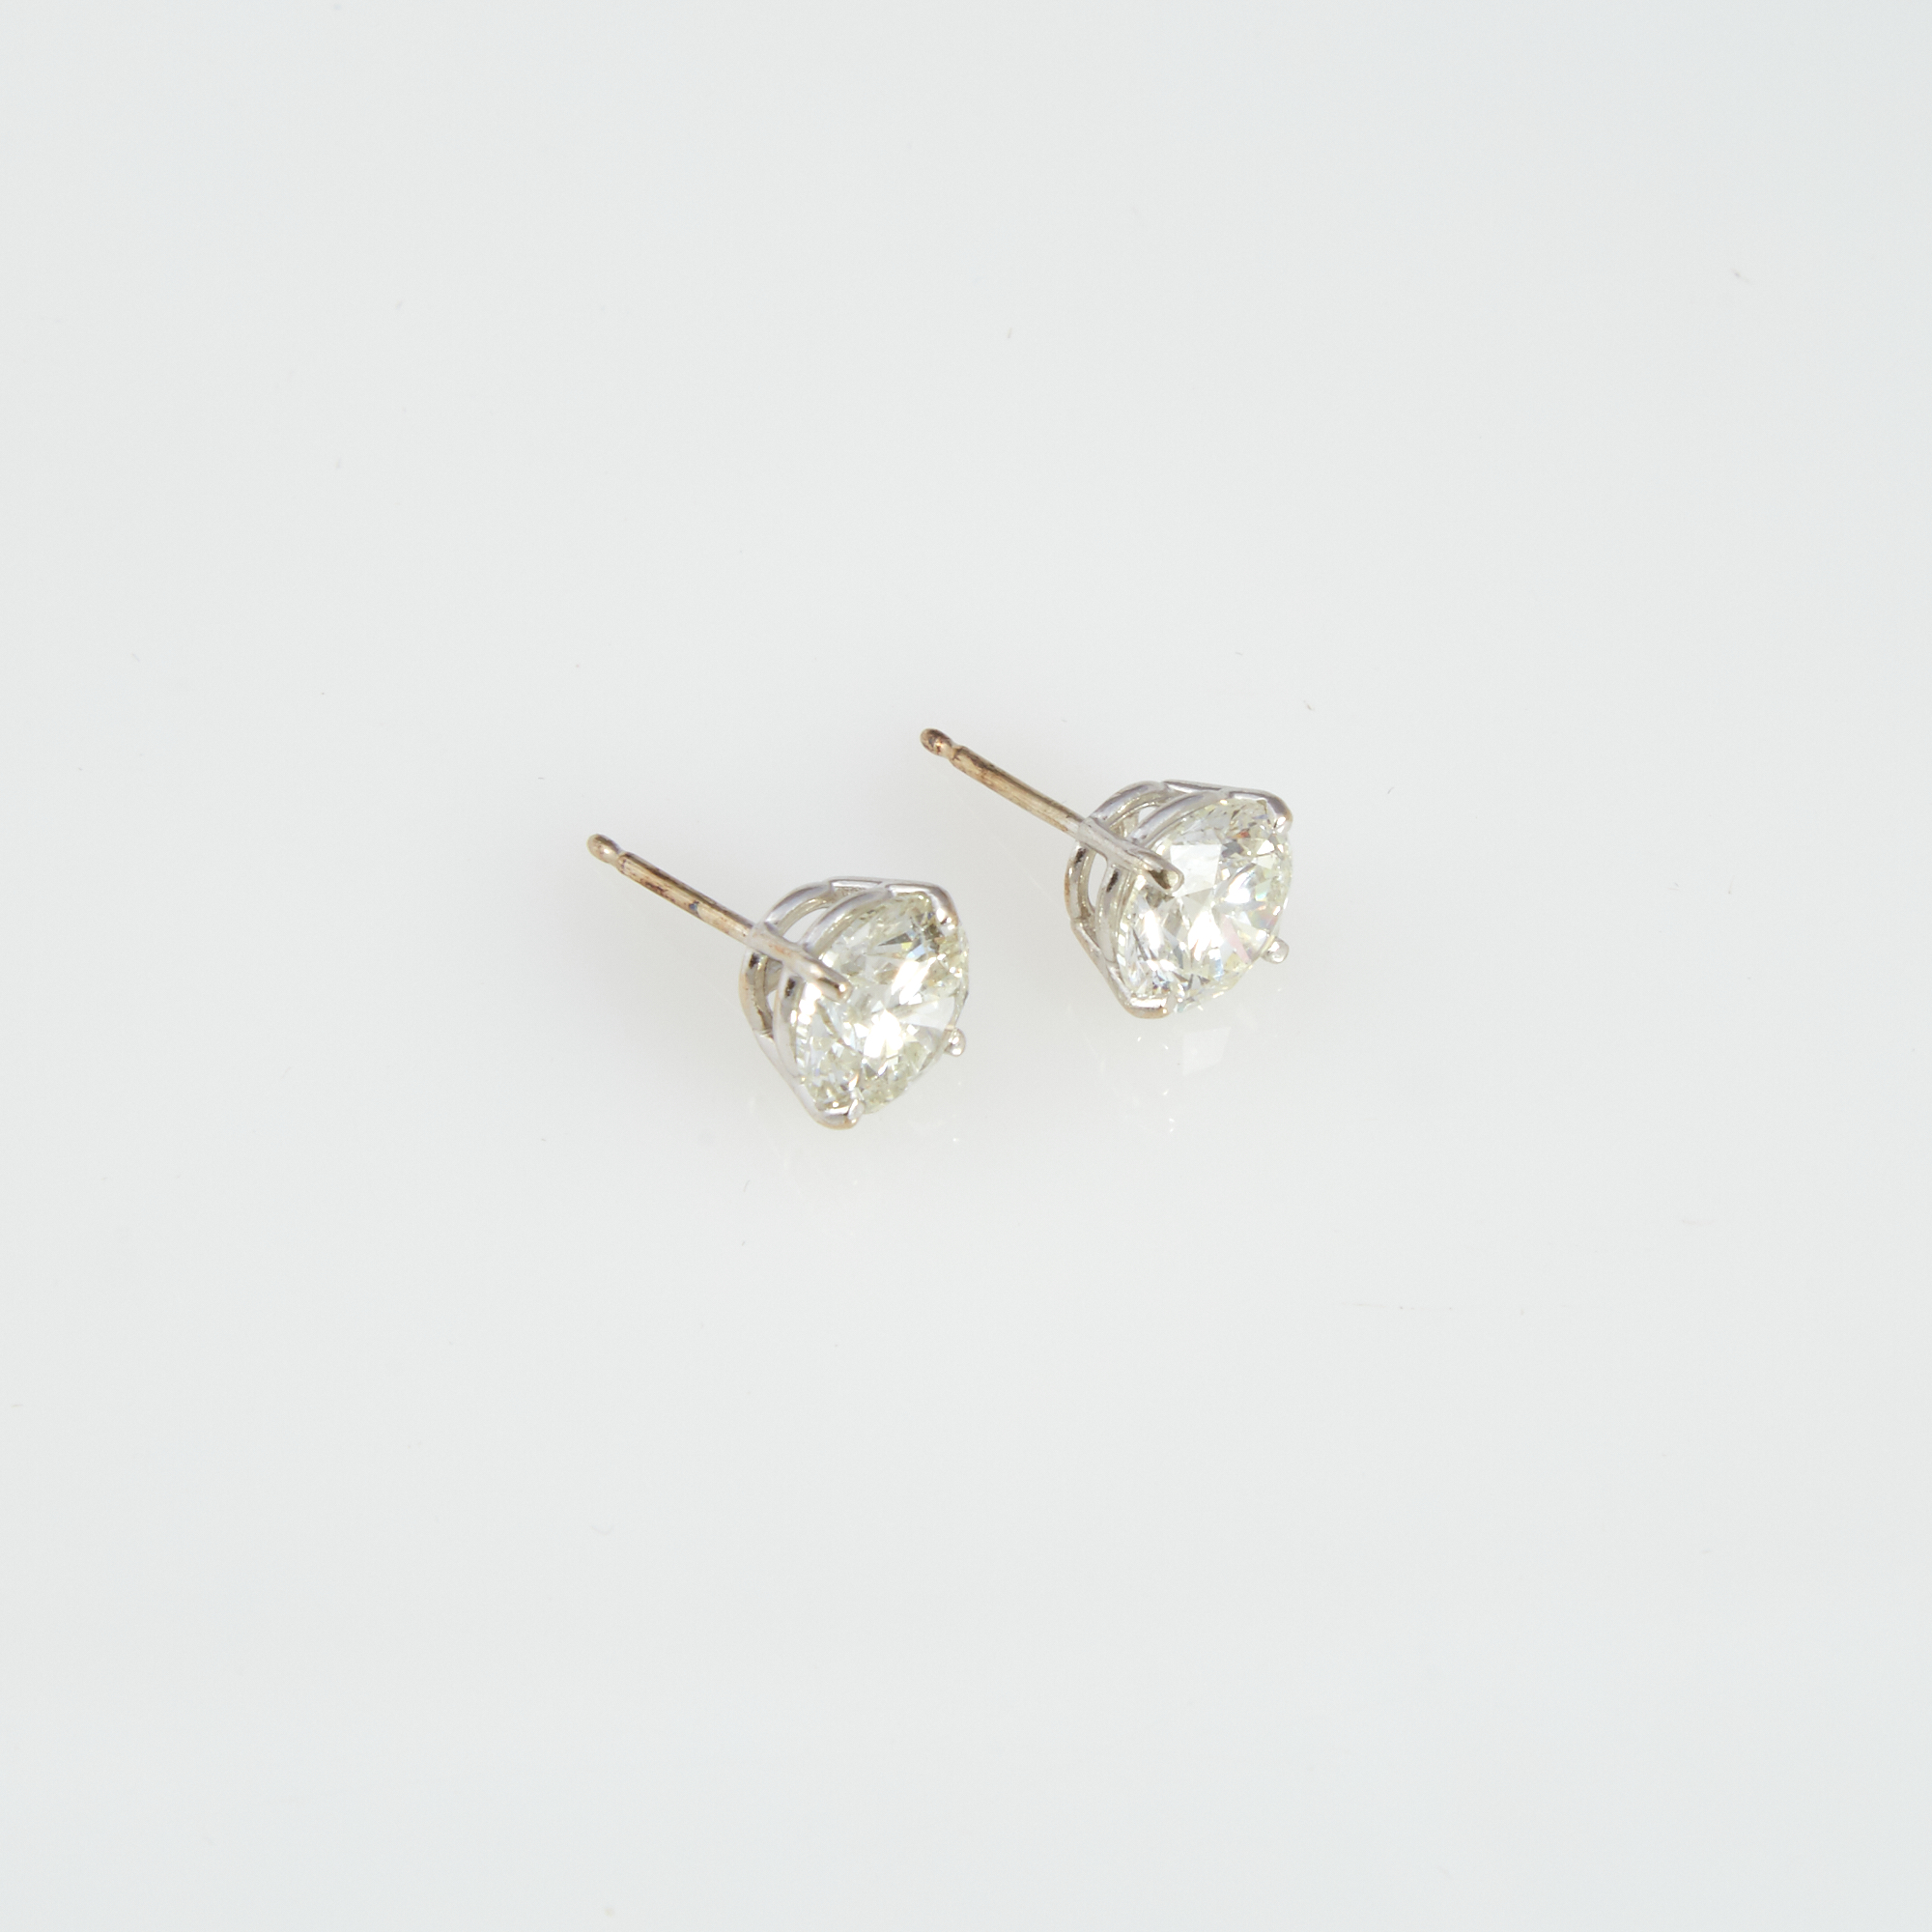 Lot image - Two Diamond Earrings about 2.95 cts., 14K 1 dwt.